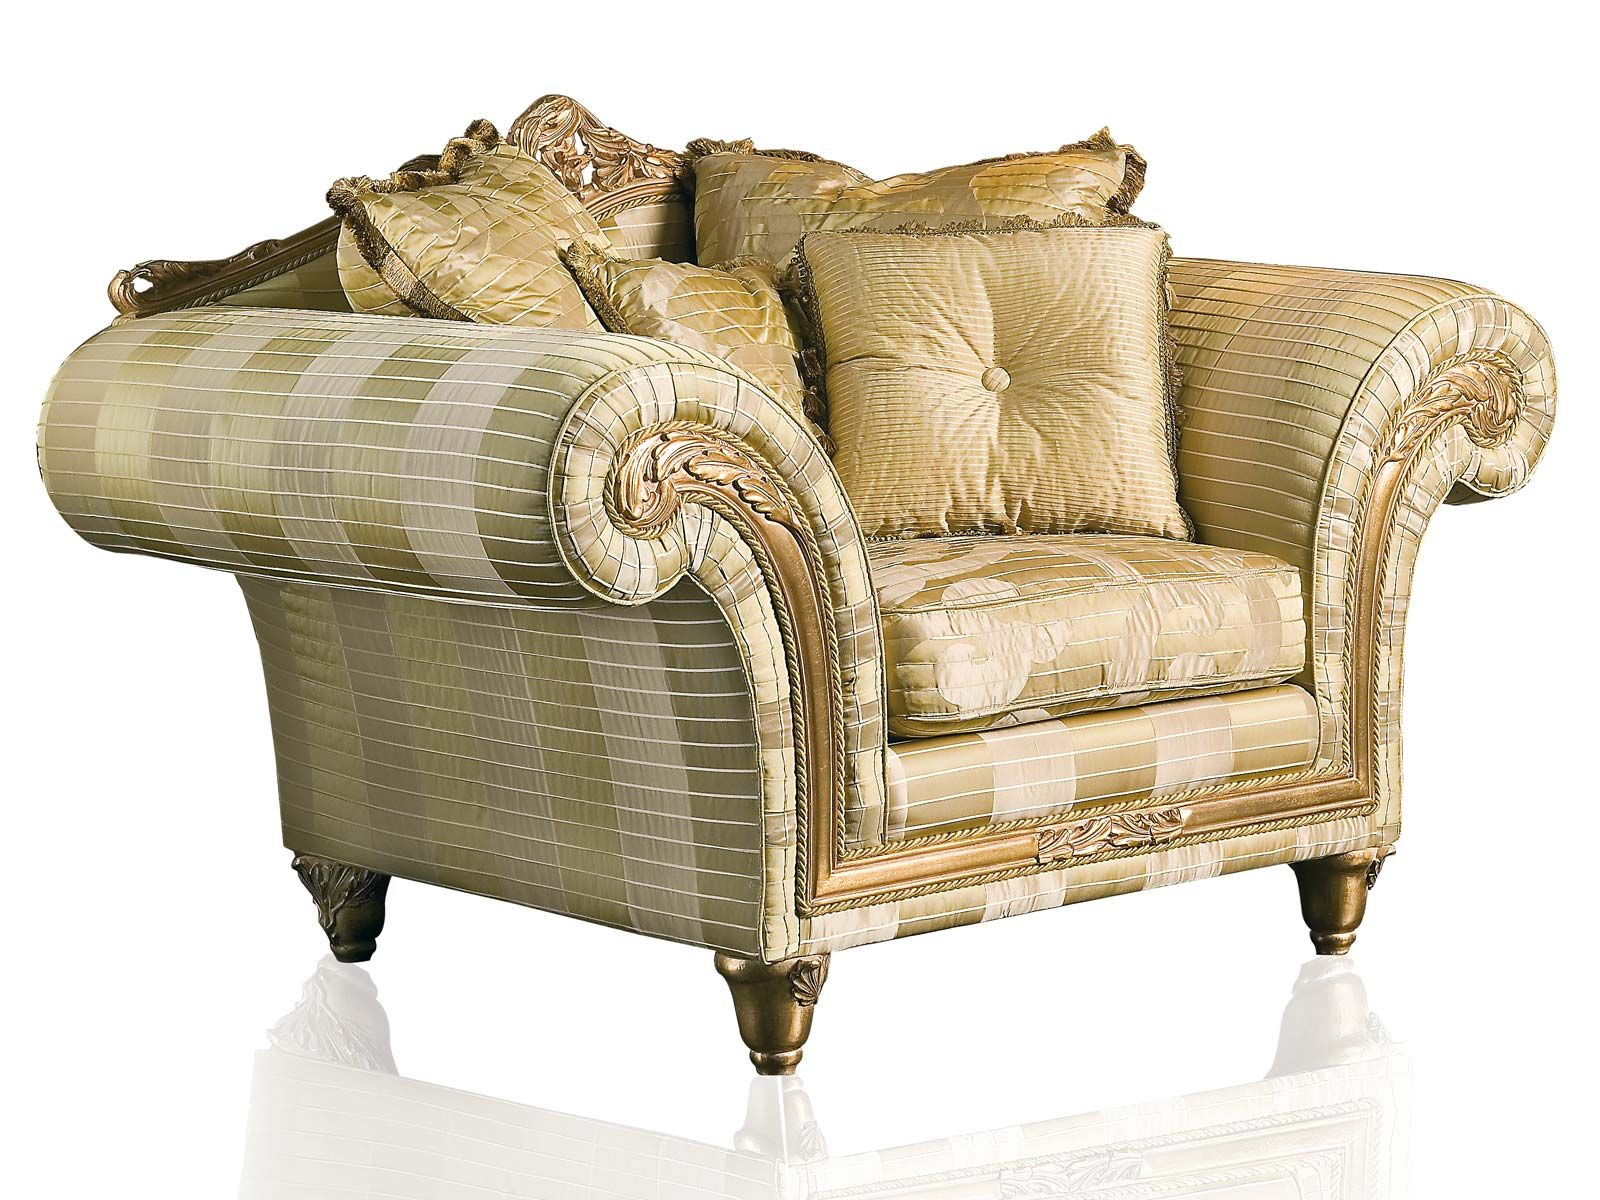 Sofa Chairs Design classic armchairs - interior | home interior & decorating